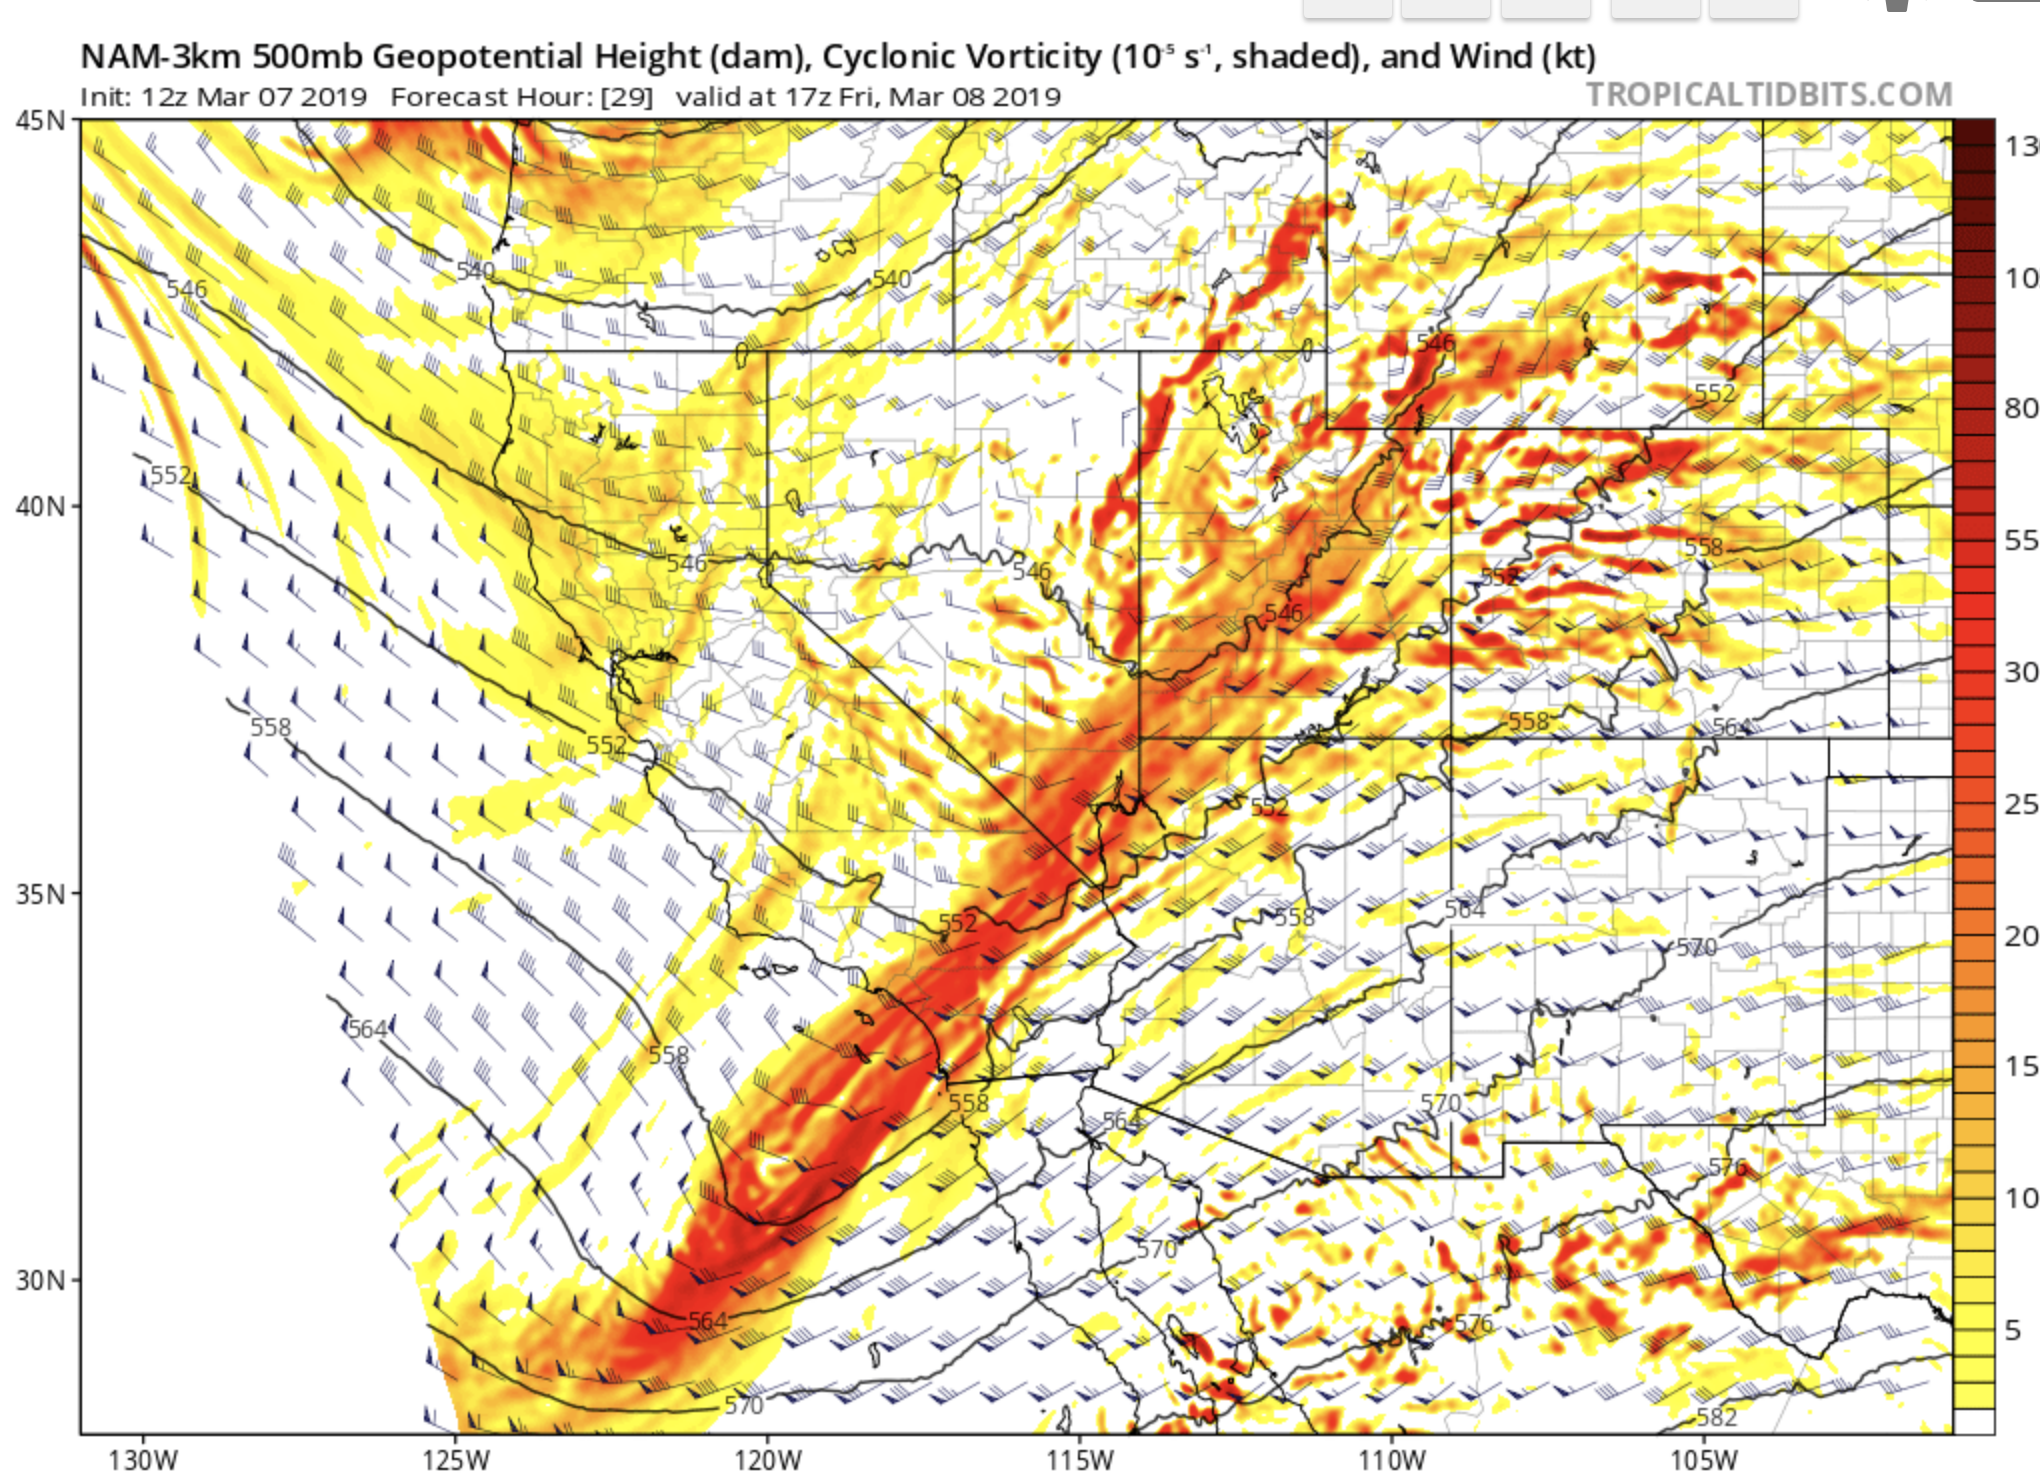 NAM 3 km forecast of 500 mb heights, winds and vorticity (shaded). Courtesy of tropicaltidbits.com